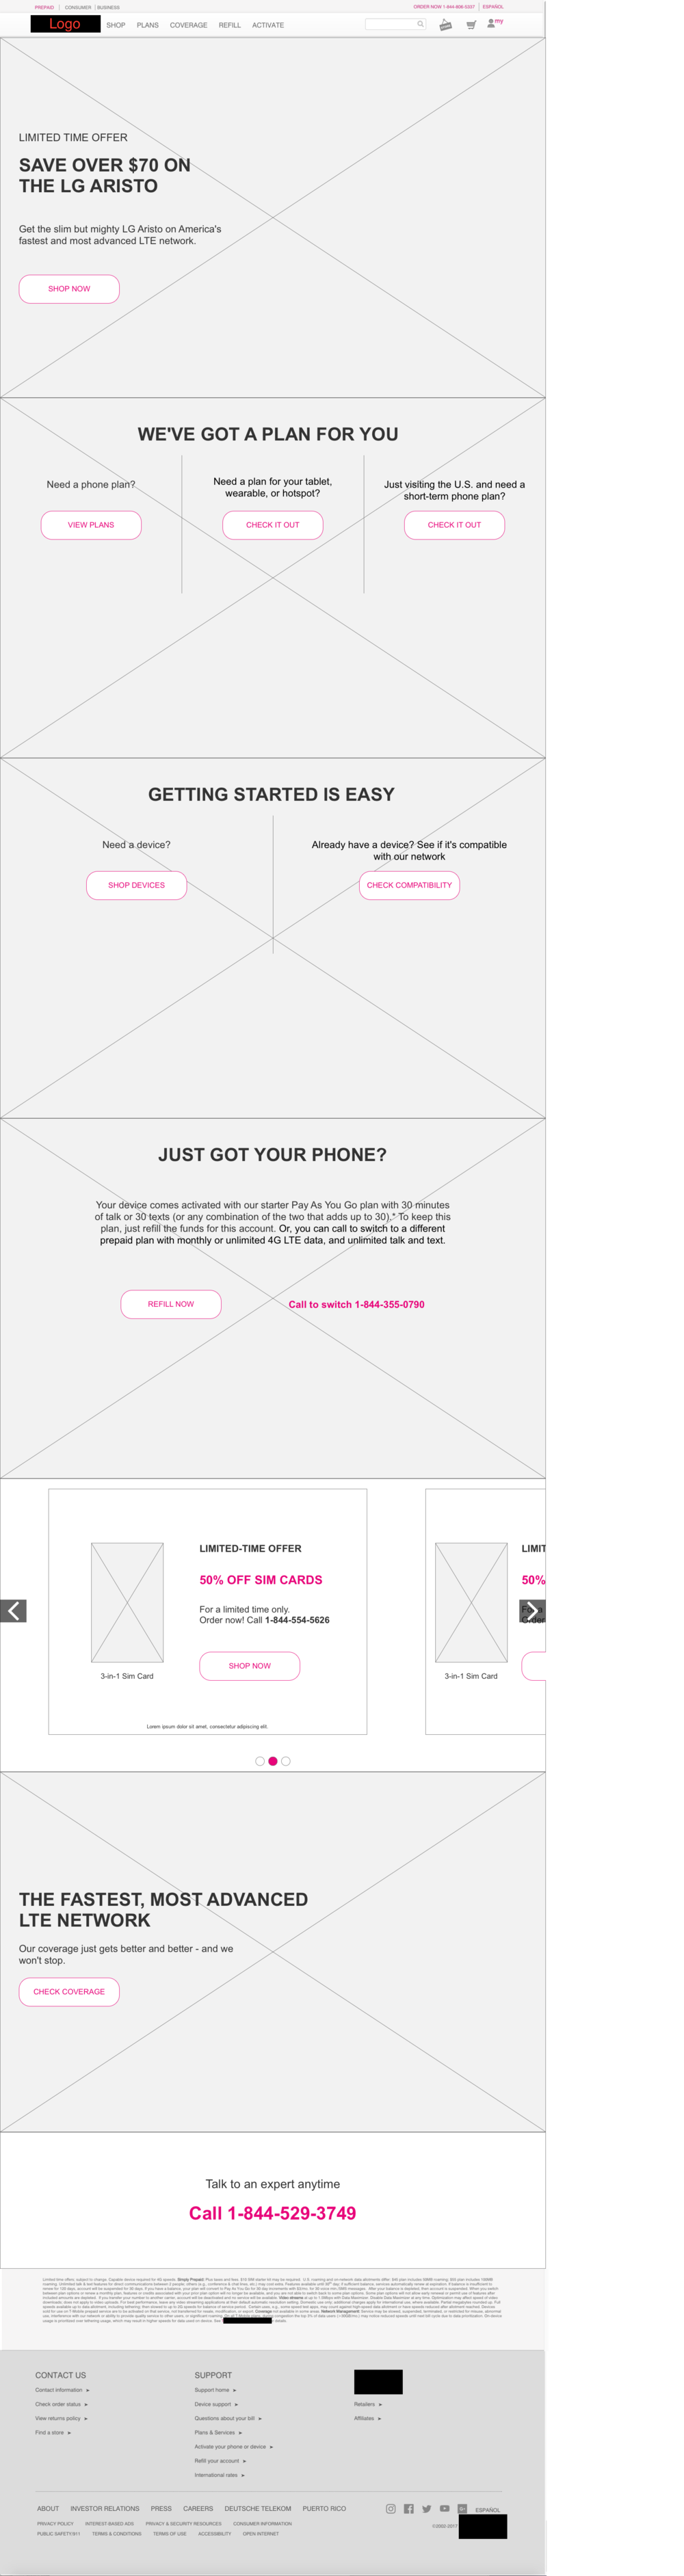 Prepaid phones landing page - desktop